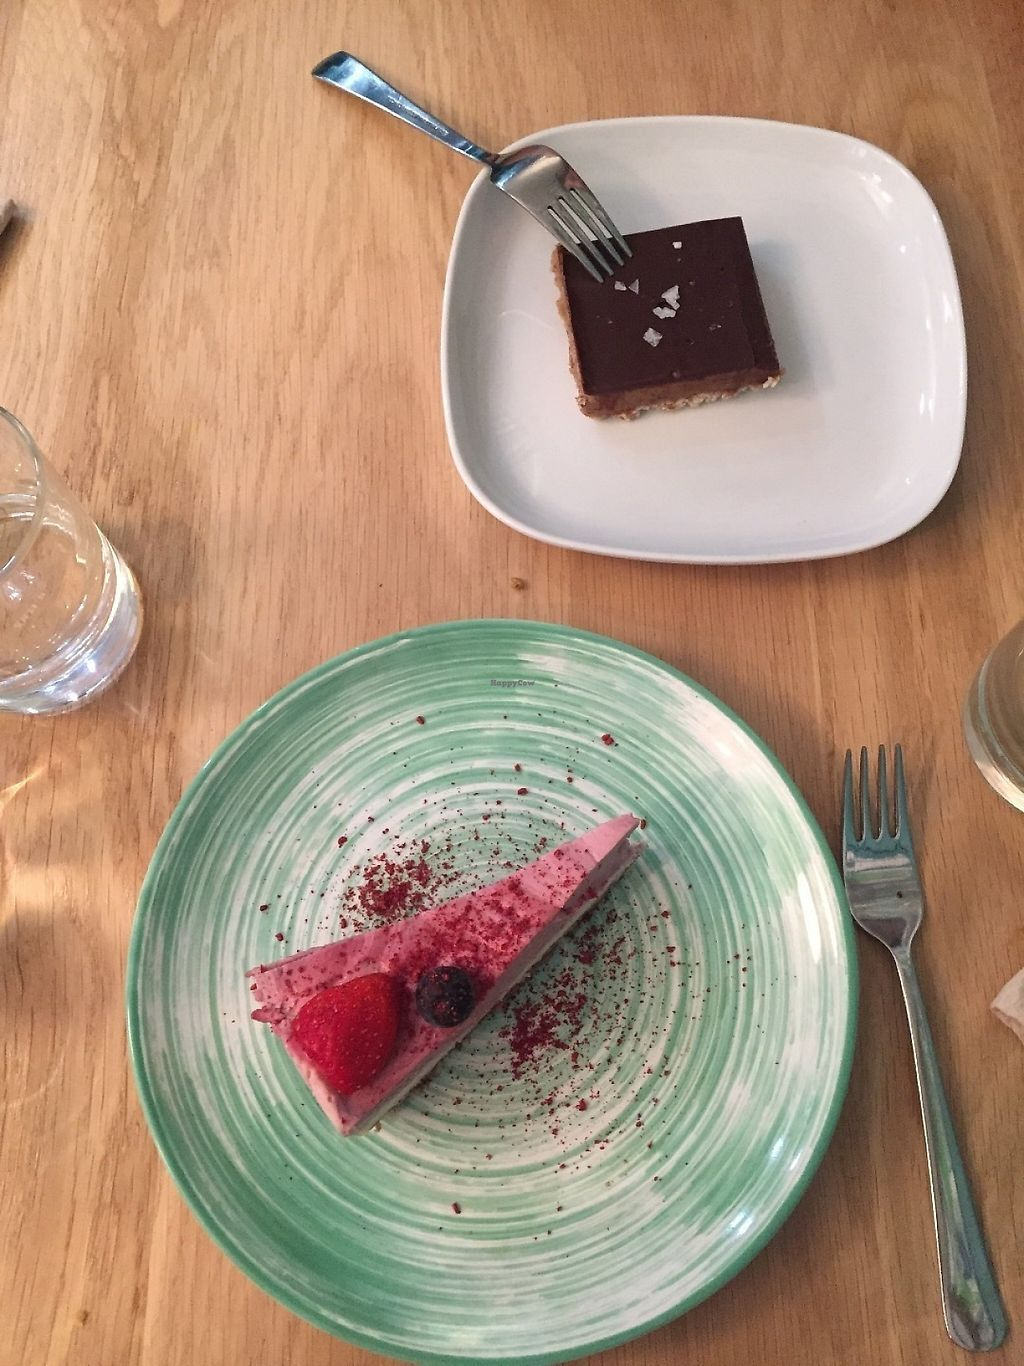 """Photo of KOKO Green  by <a href=""""/members/profile/MarieNourMargi"""">MarieNourMargi</a> <br/>Vegan cheesecake and a chocolate/caramel kind of cake <br/> May 21, 2017  - <a href='/contact/abuse/image/75042/261162'>Report</a>"""